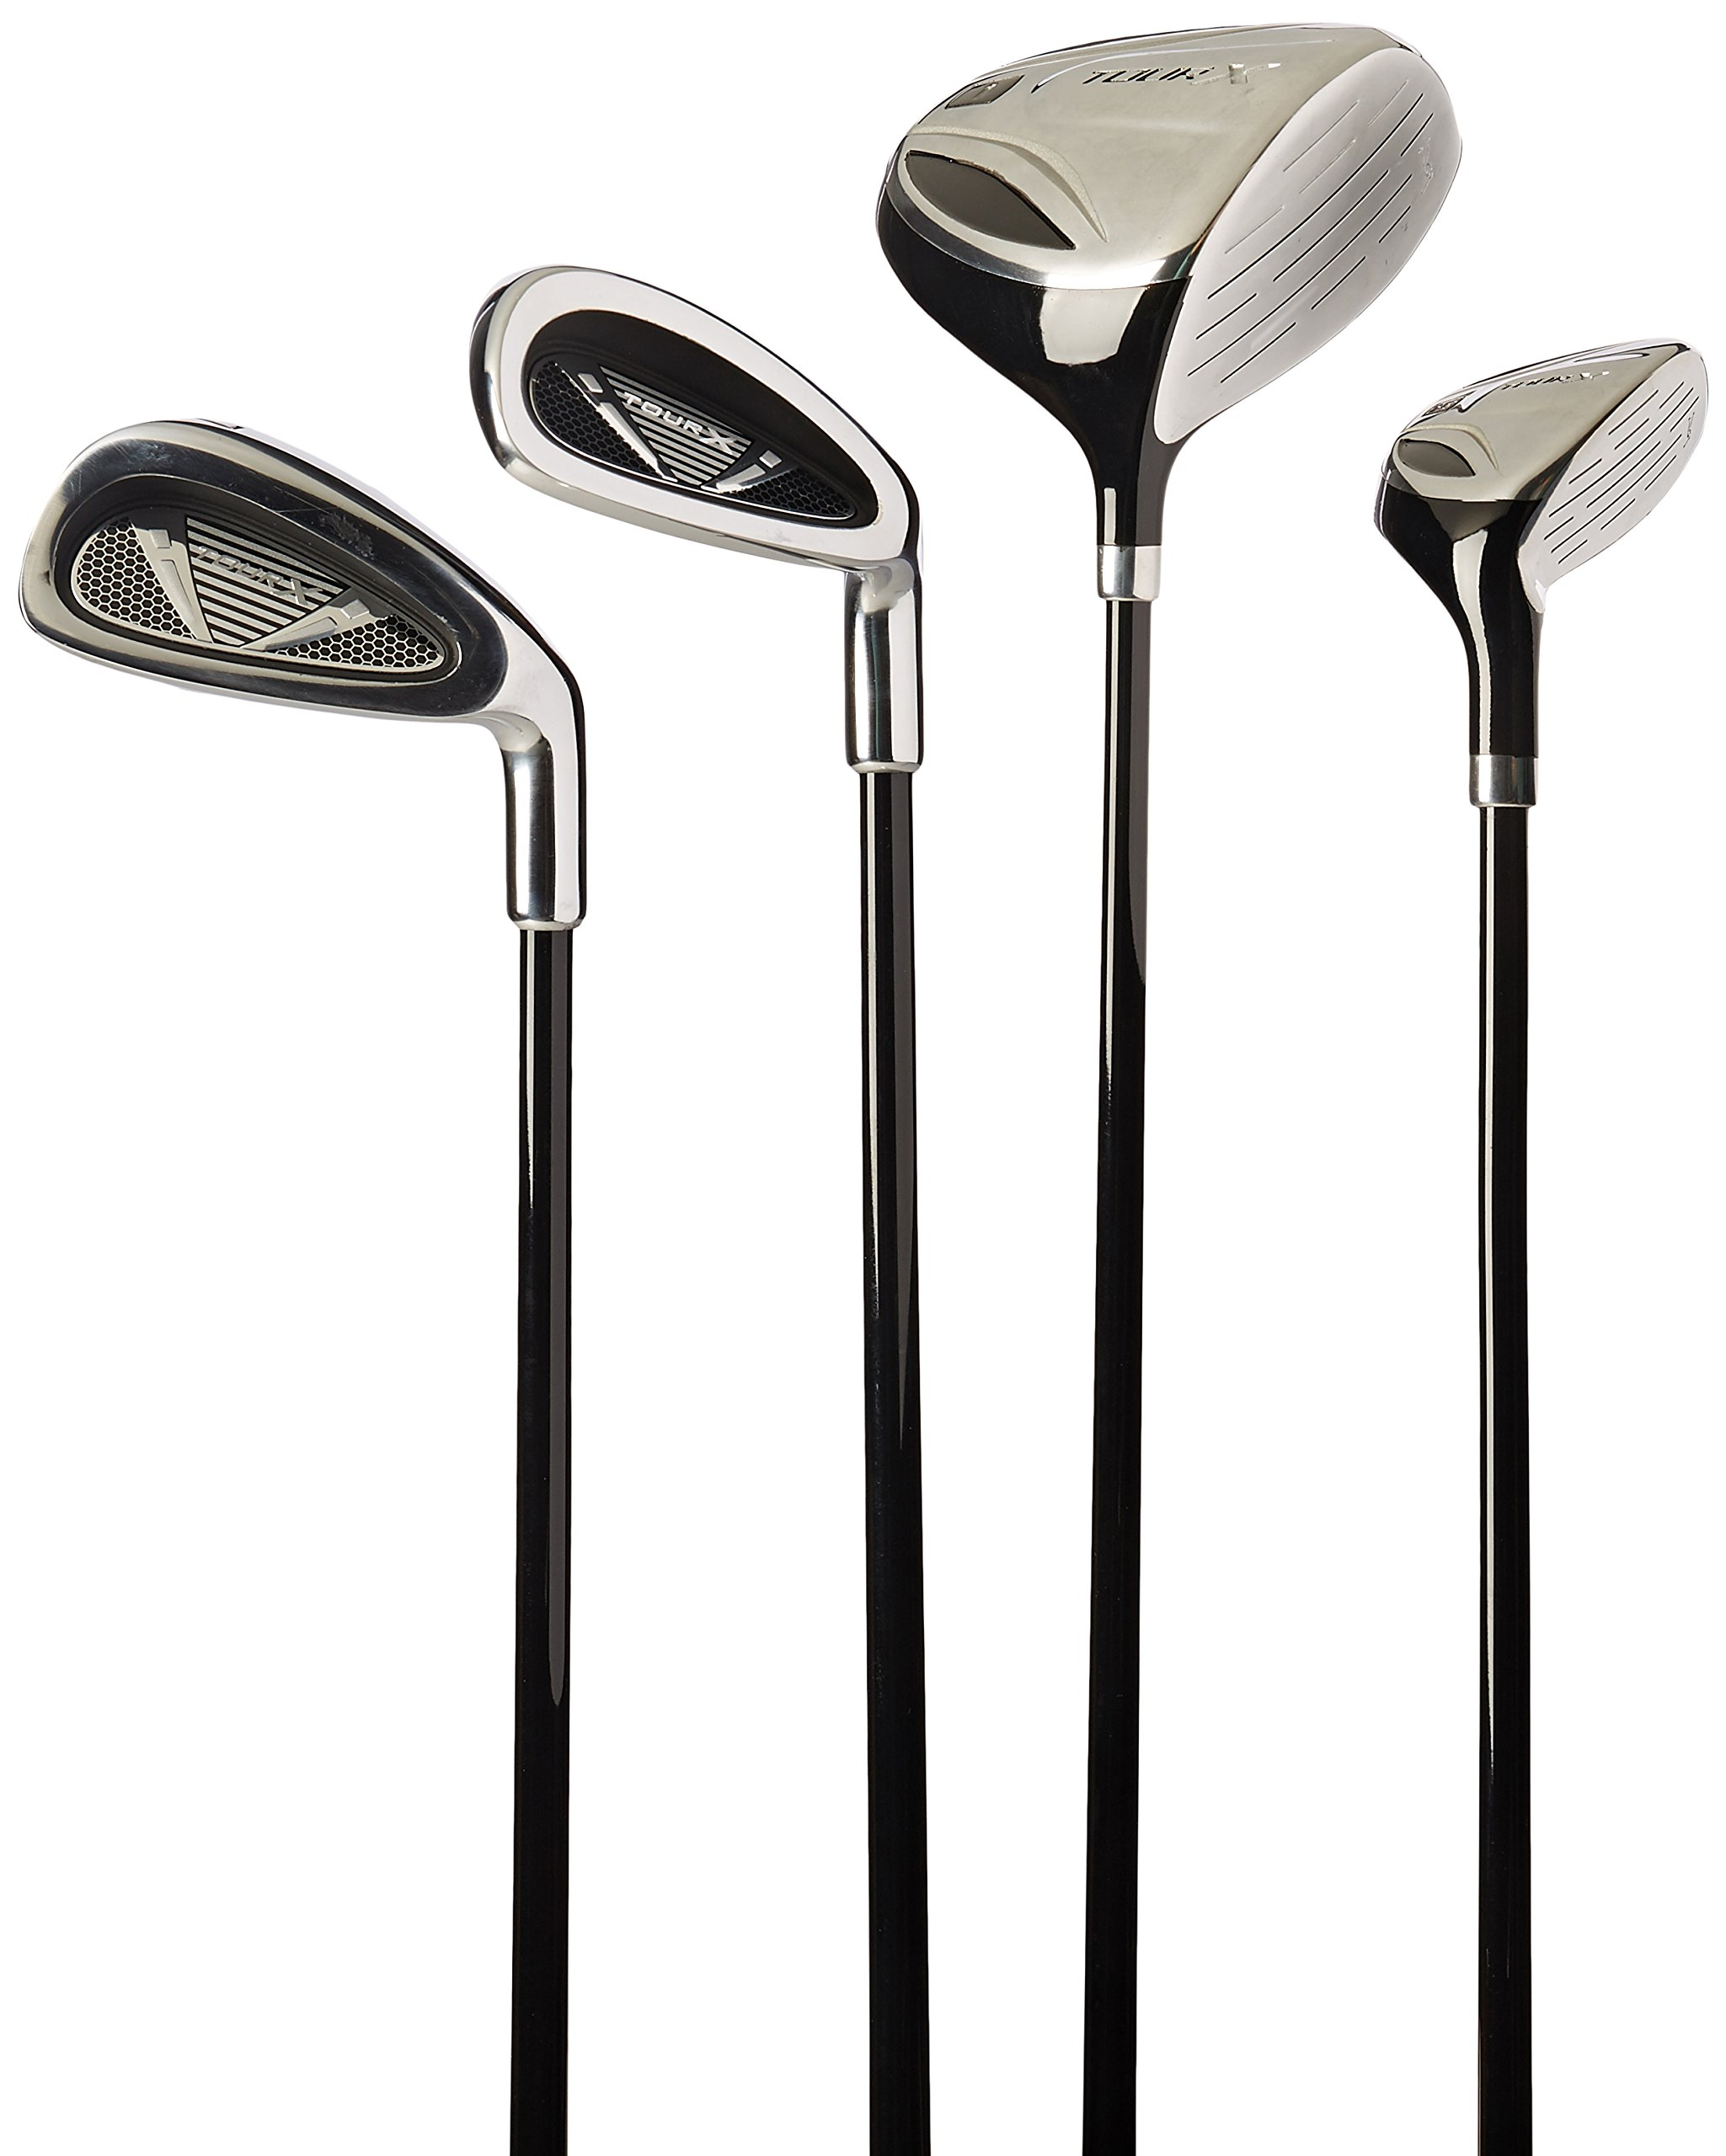 Merchants of Golf Tour X 5-Piece Junior Golf Complete Set with Stand Bag, Right Hand, 12+ Age, Graphite, Regular by Merchants of Golf (Image #3)